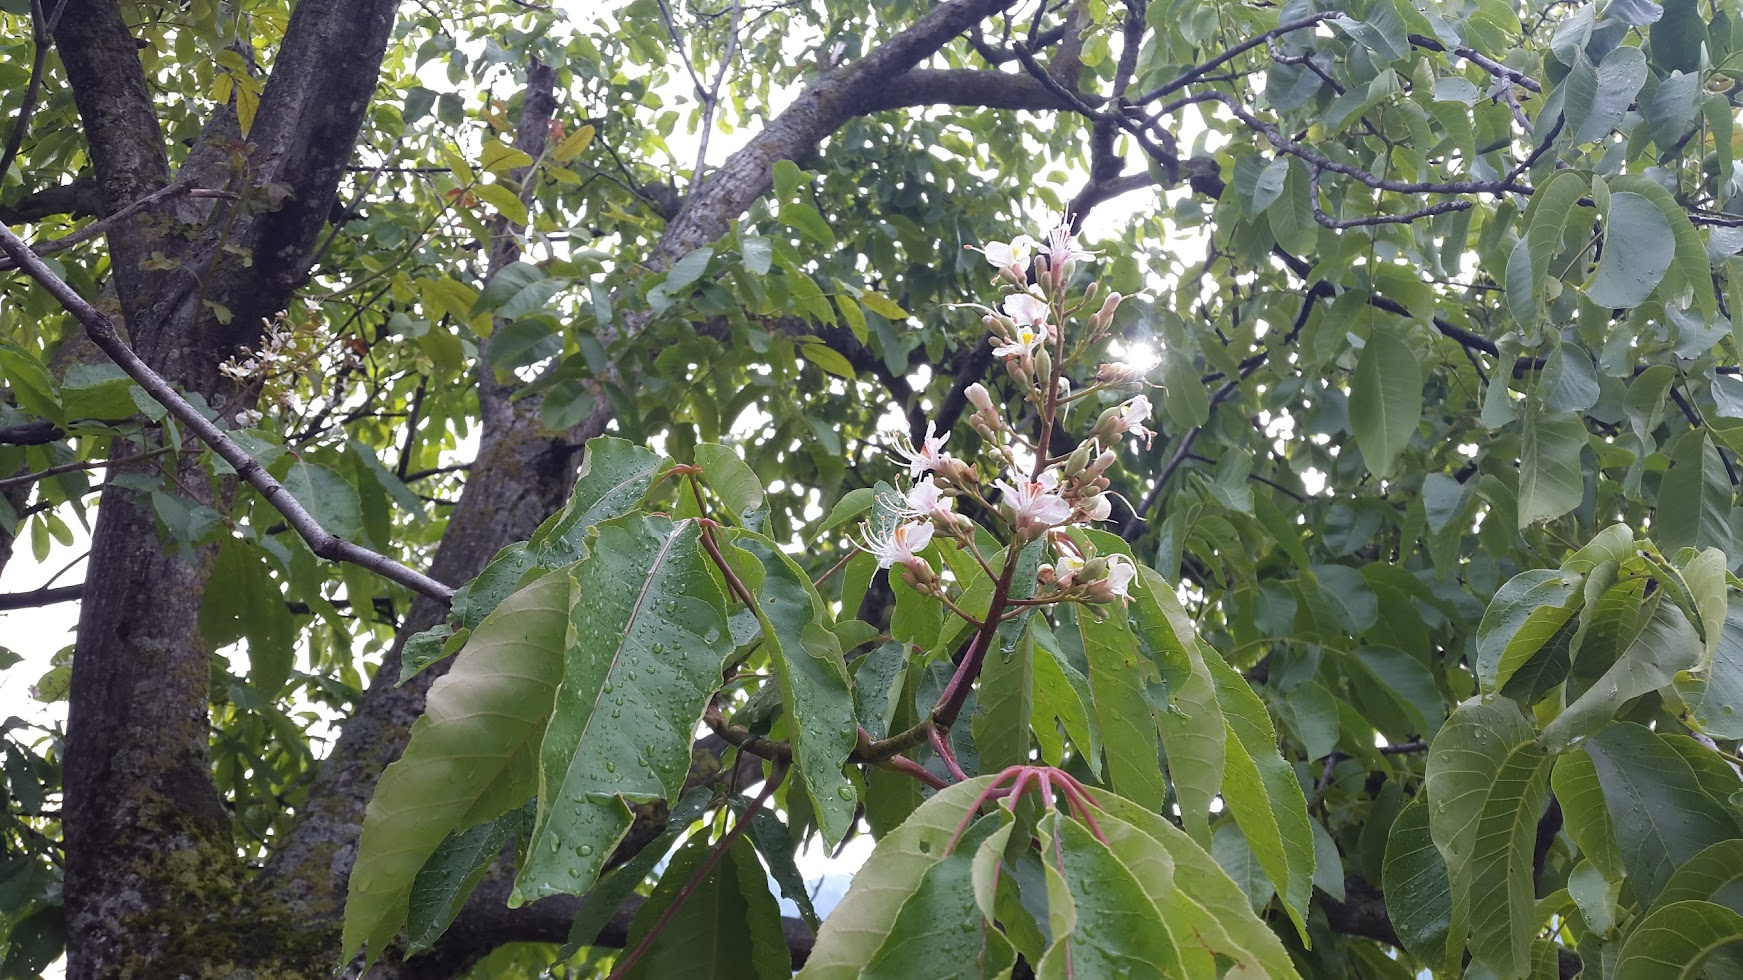 Walnut blossoms